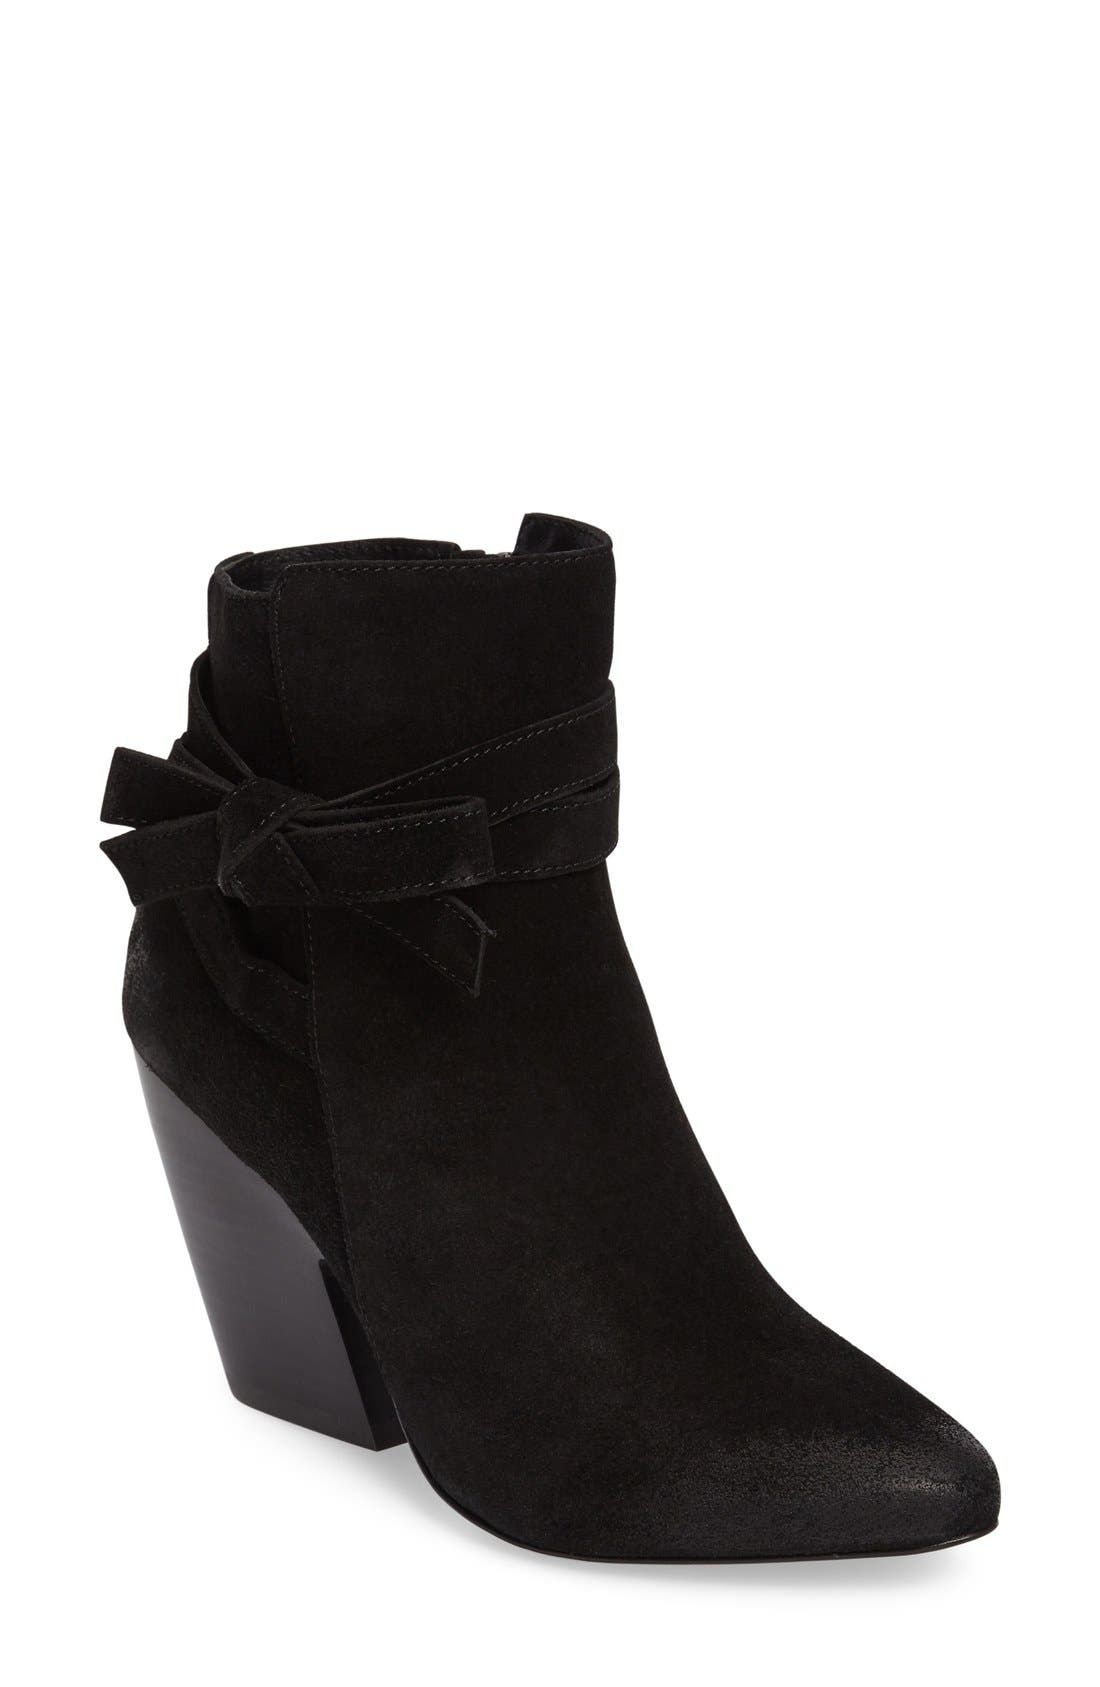 Alternate Image 1 Selected - Pelle Moda Jax Block Heel Bootie (Women)